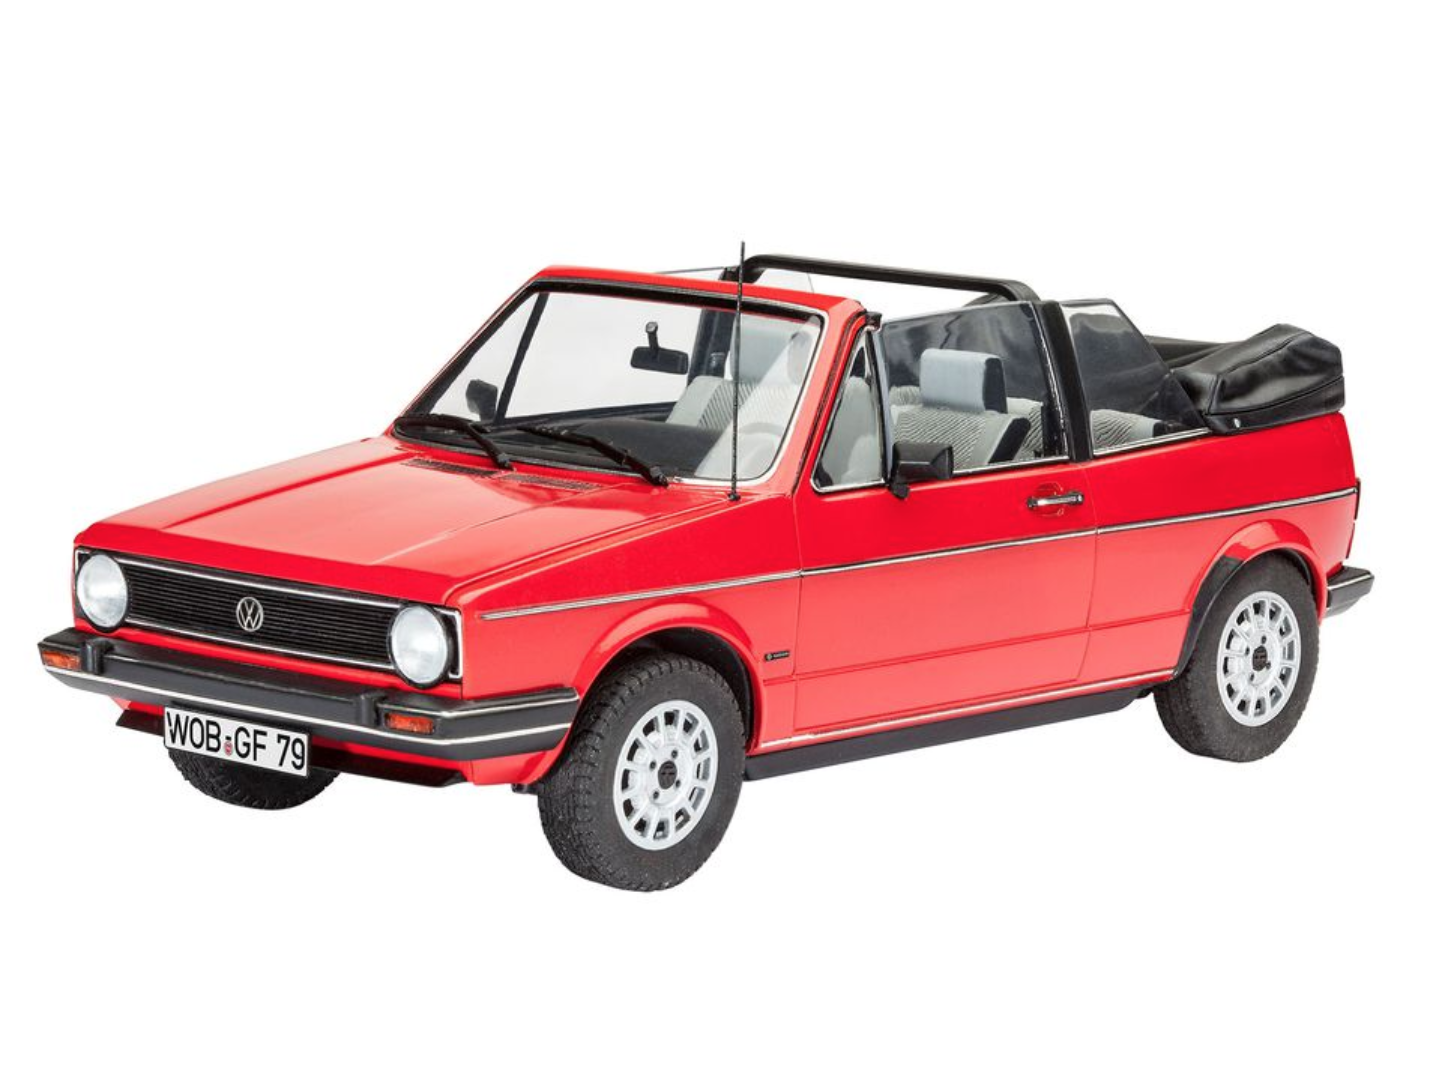 vw golf 1 cabriolet model kit by revell 1 24 scale choice gear. Black Bedroom Furniture Sets. Home Design Ideas